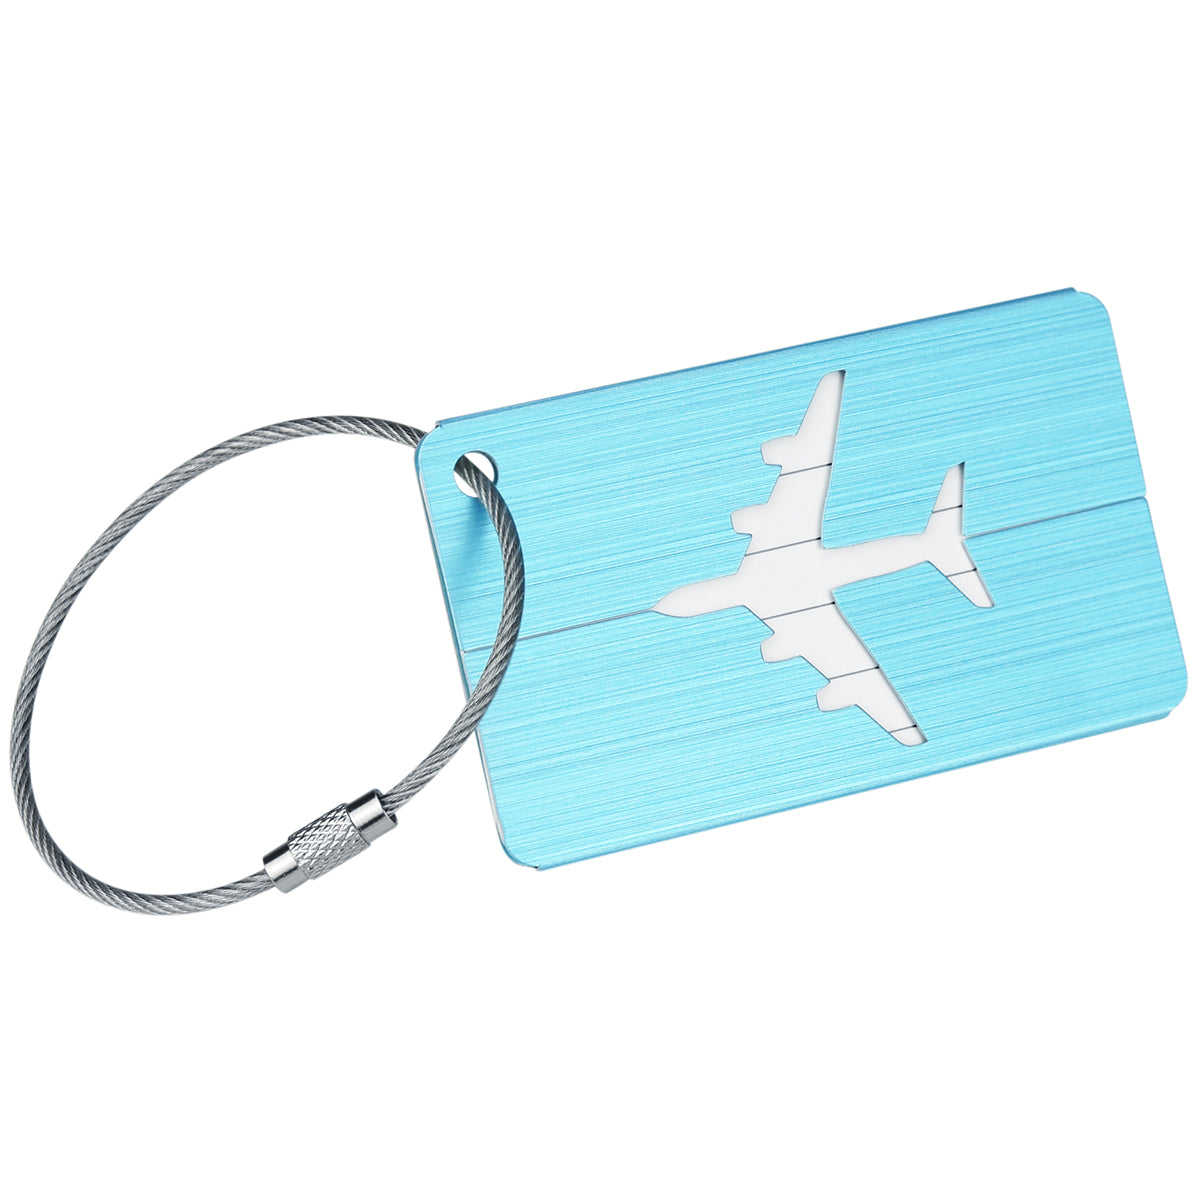 A blue brushed aluminum luggage tag with hollow airplane pattern display with a white background. The luggage tag has steel wire ring.